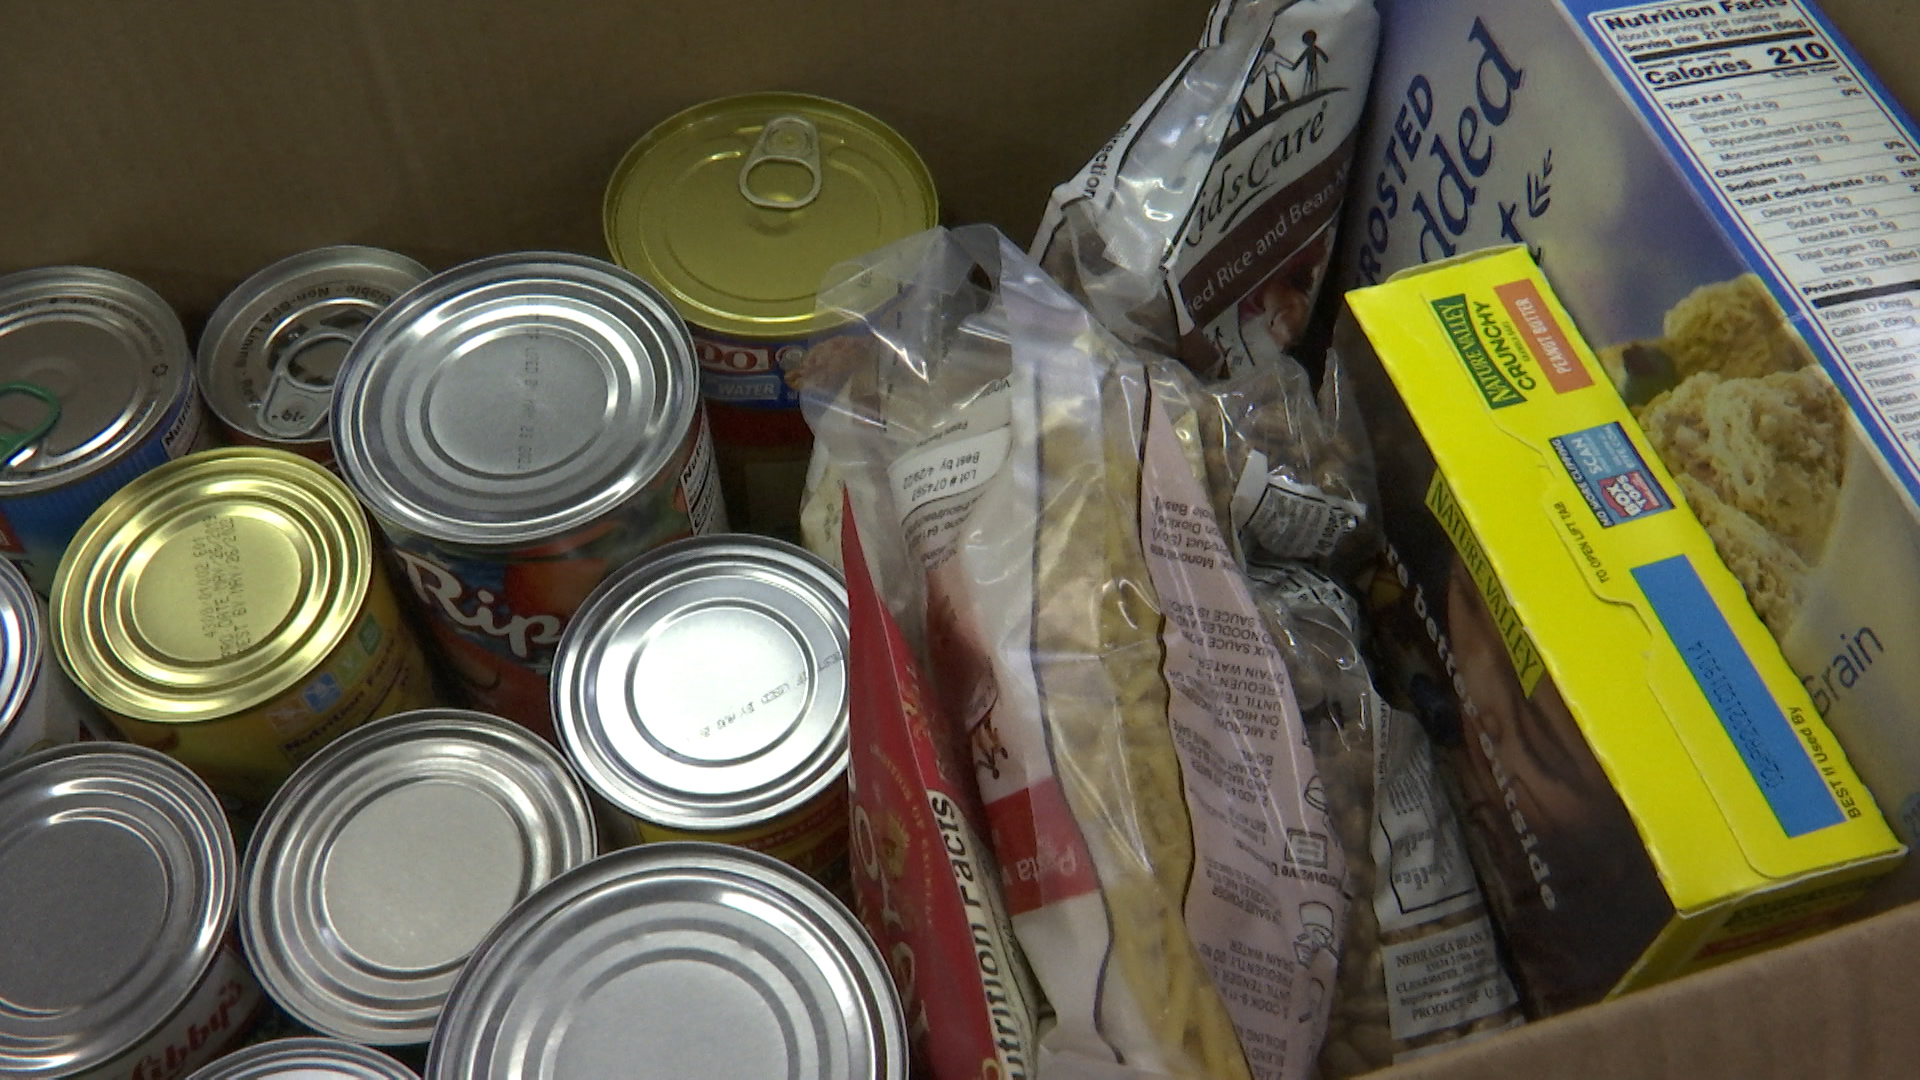 Wichita Falls Area Food Bank officials said since COVID-19 hit they have seen a 30% increase of need in the community.